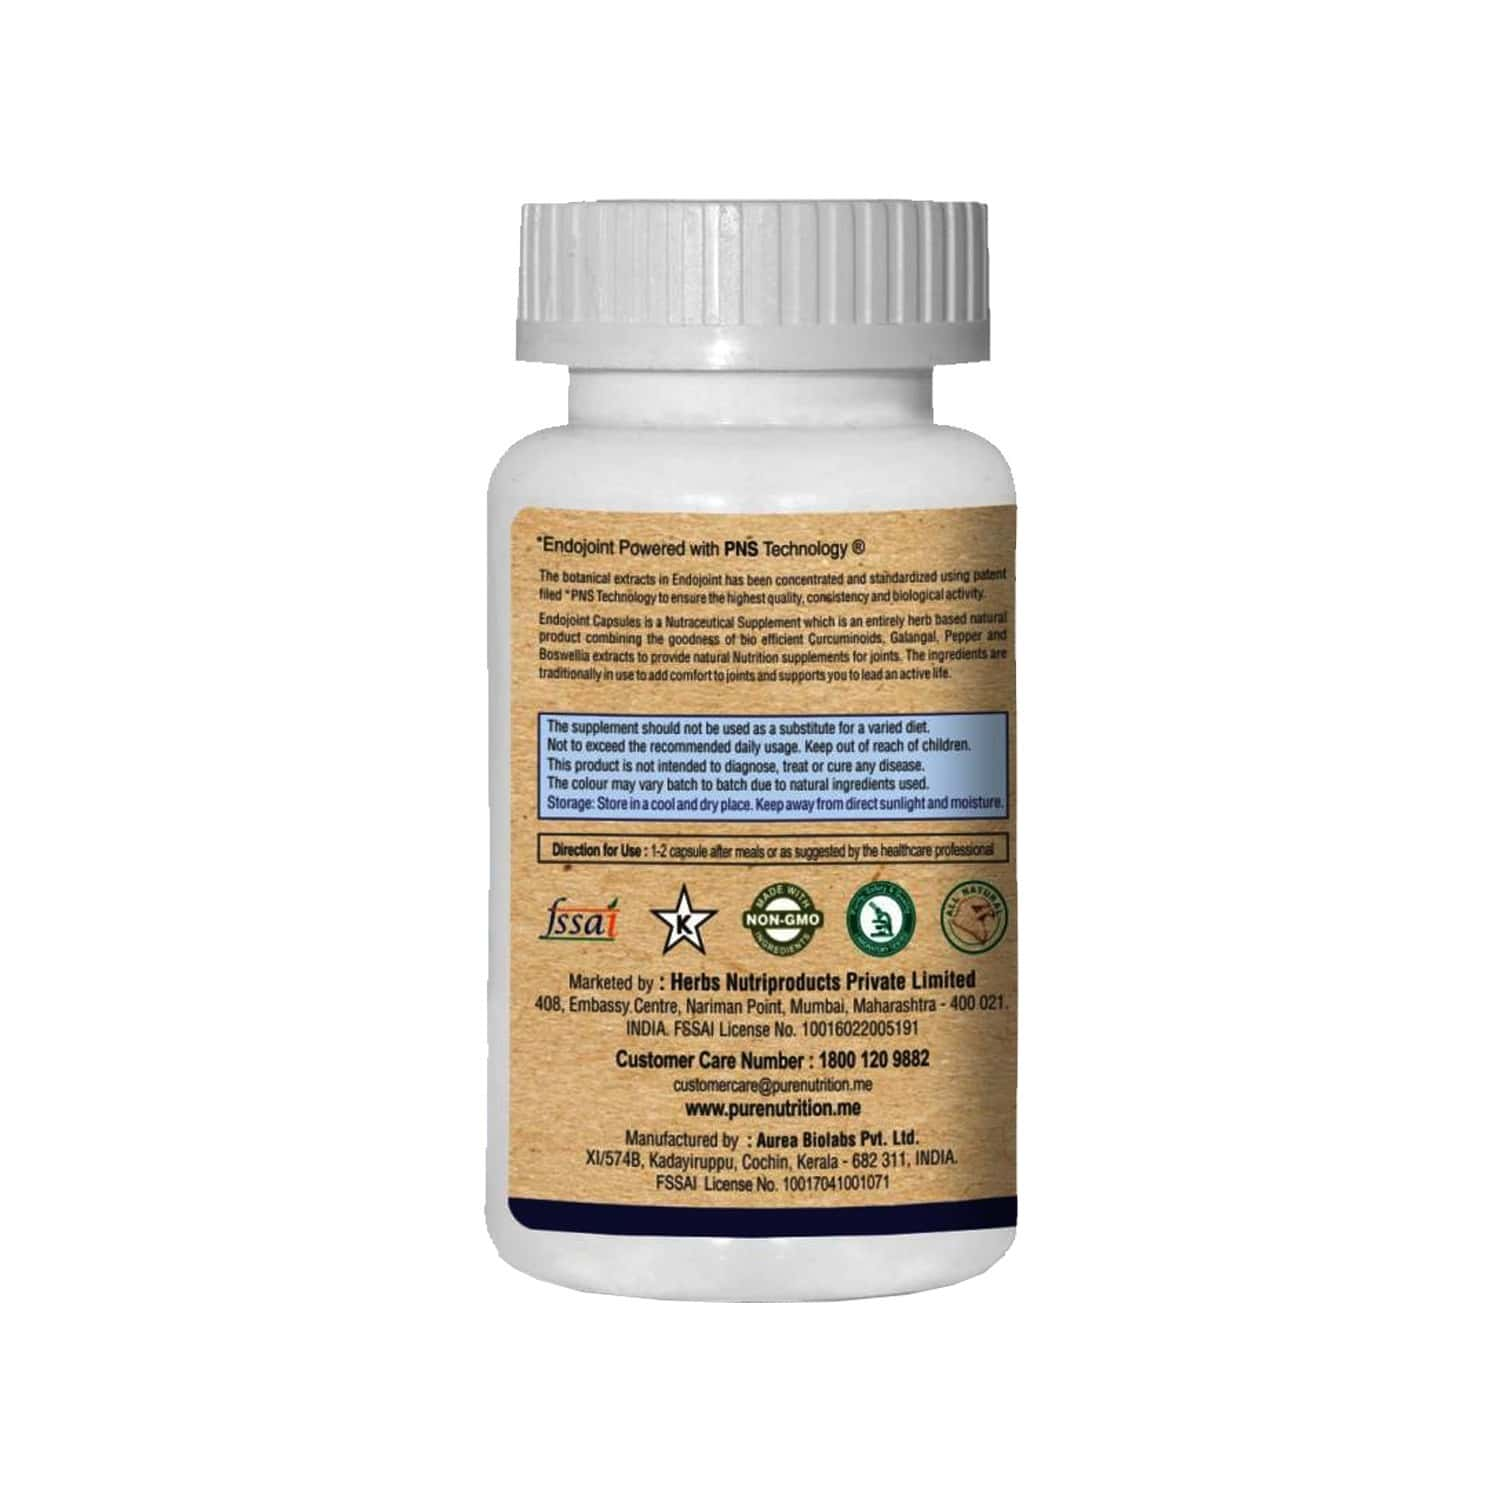 Pure Nutrition Endojoint (provides Natural Nutrition For Joints Health) - 30 Capsules